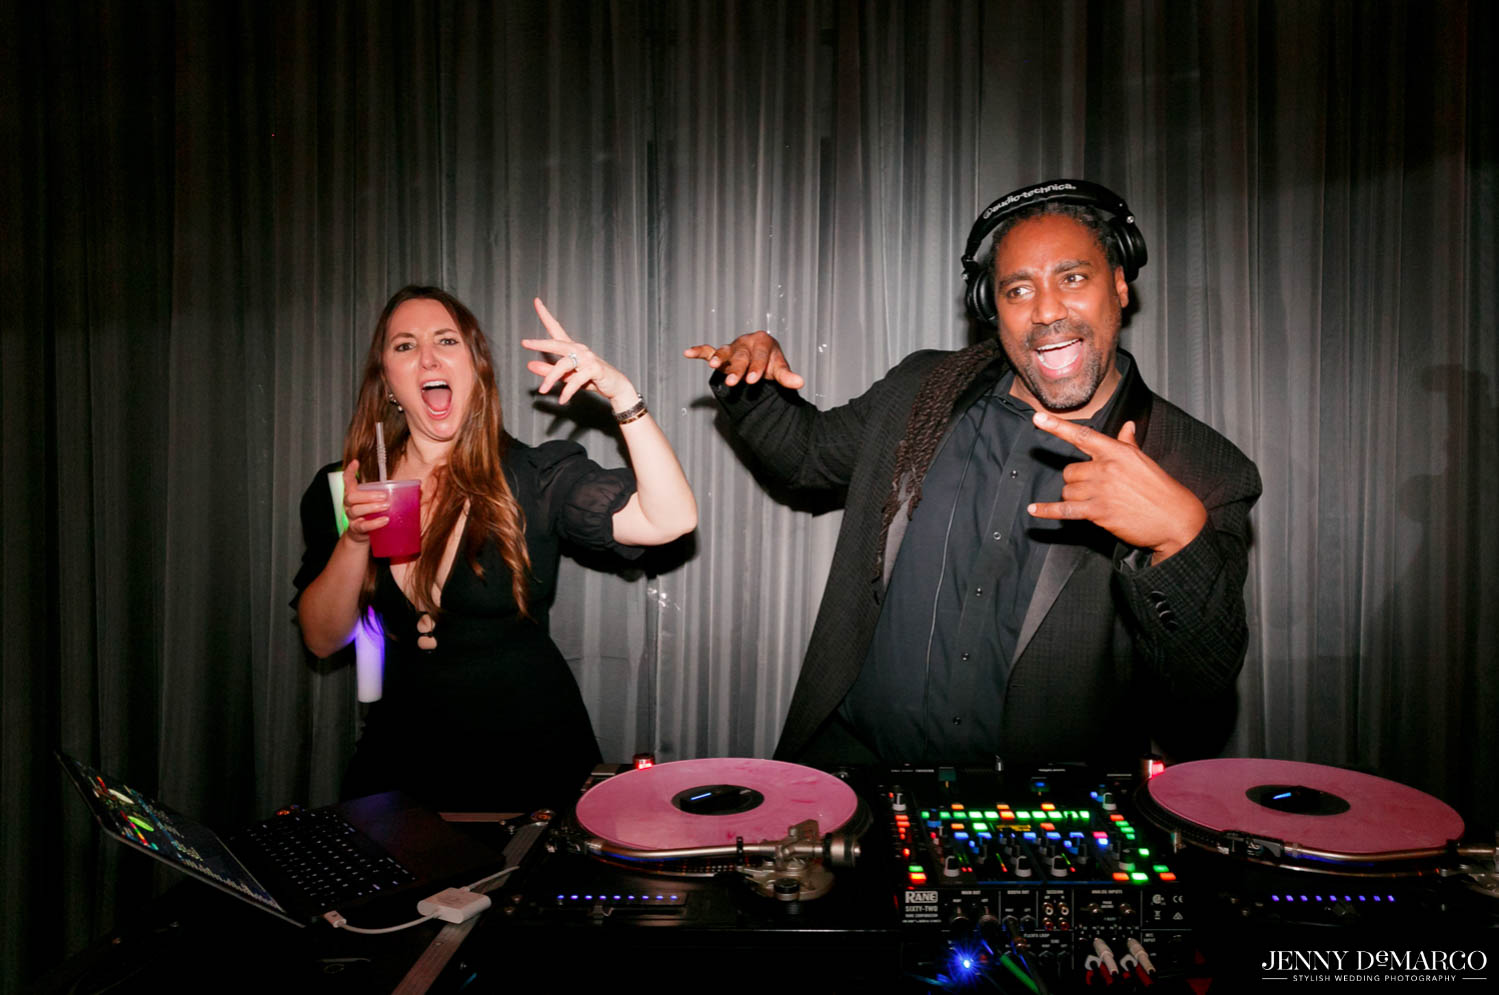 guest dancing with DJ behind DJ booth